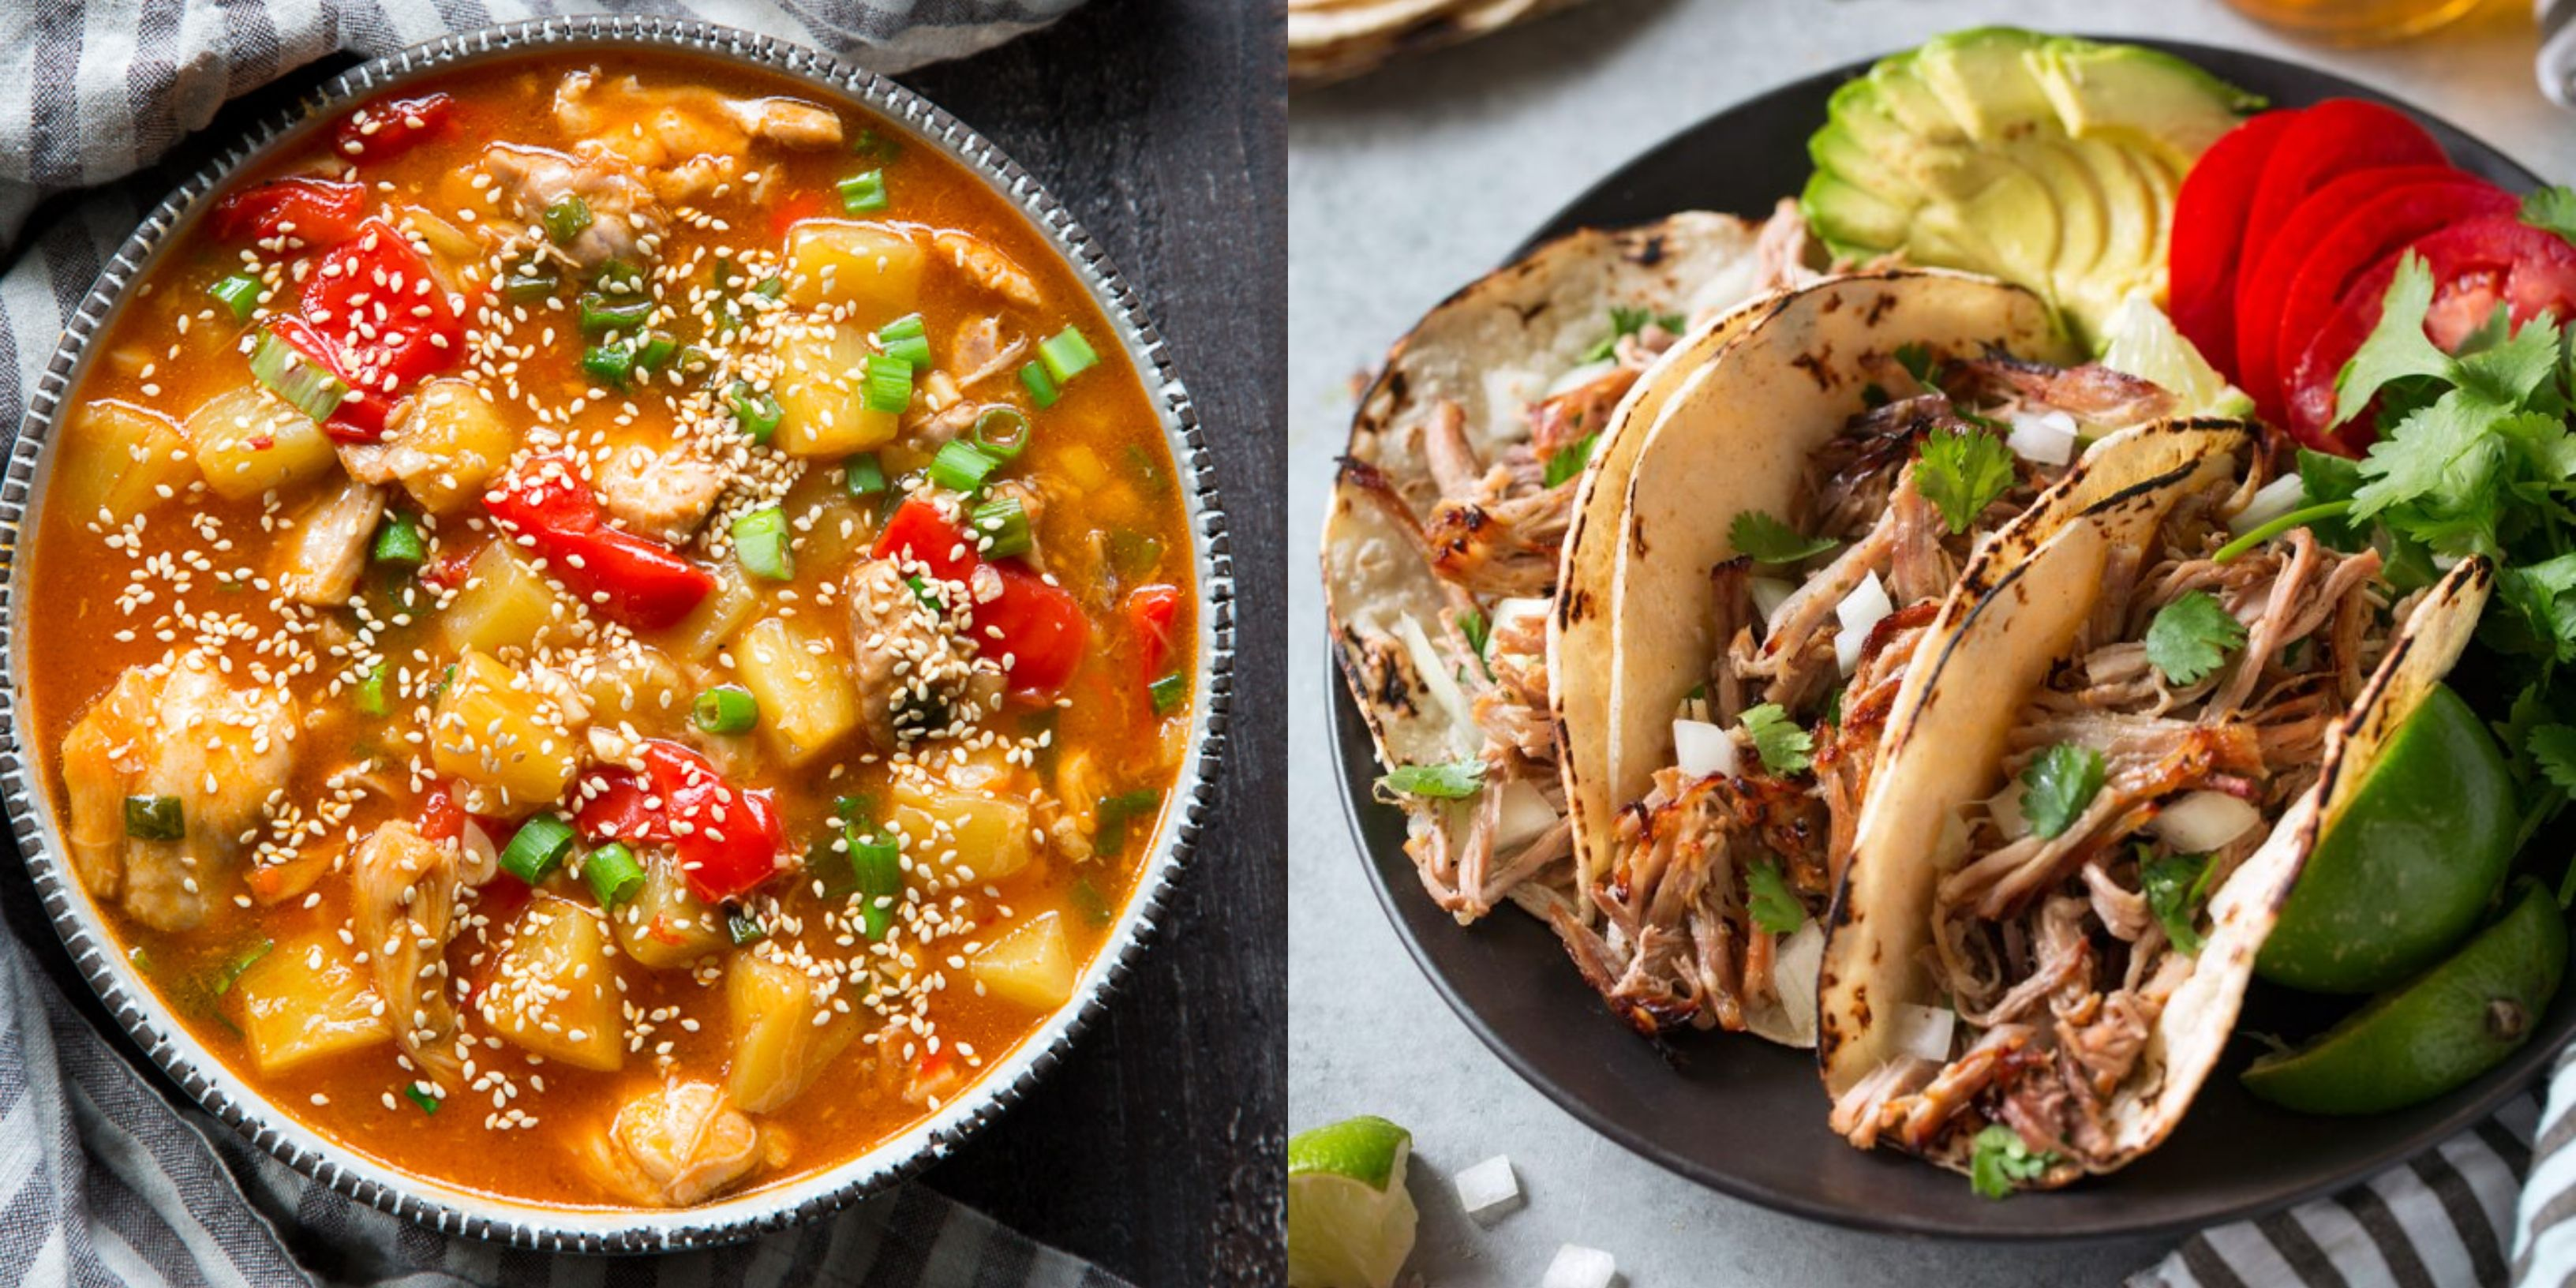 40+ of the Best Instant Pot Recipes for Quick and Easy Weeknight Dinners